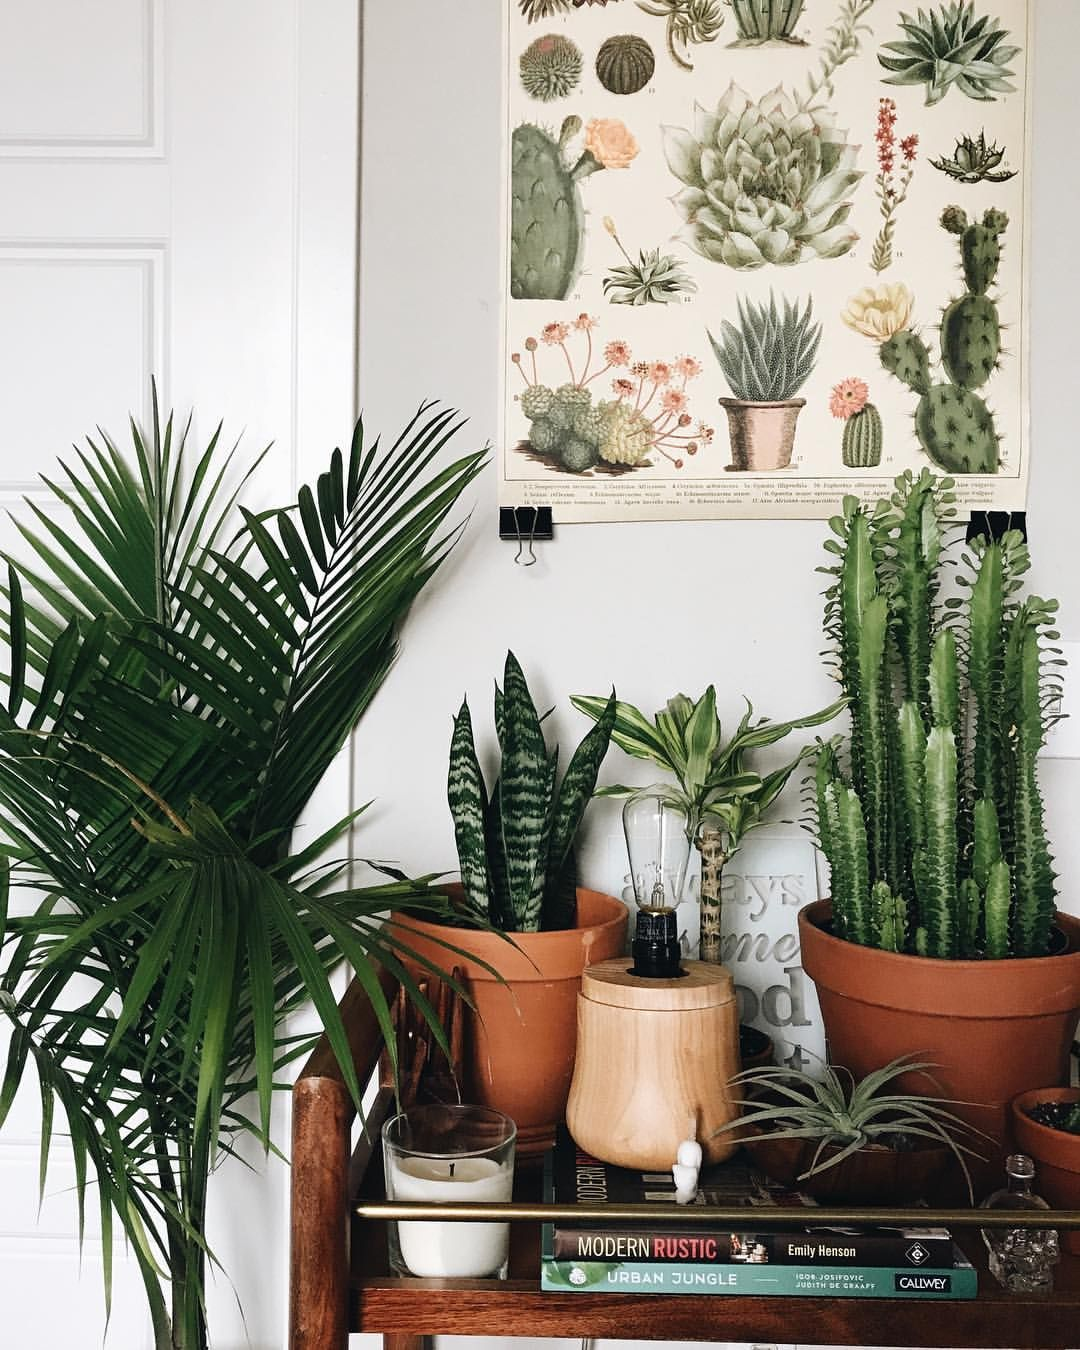 Home Decoration Ideas: Lovely Collection Of Indoor Plants Creating An Urban  Jungle. Wonderful Botanical Cacti Illustration Wall Art Too.